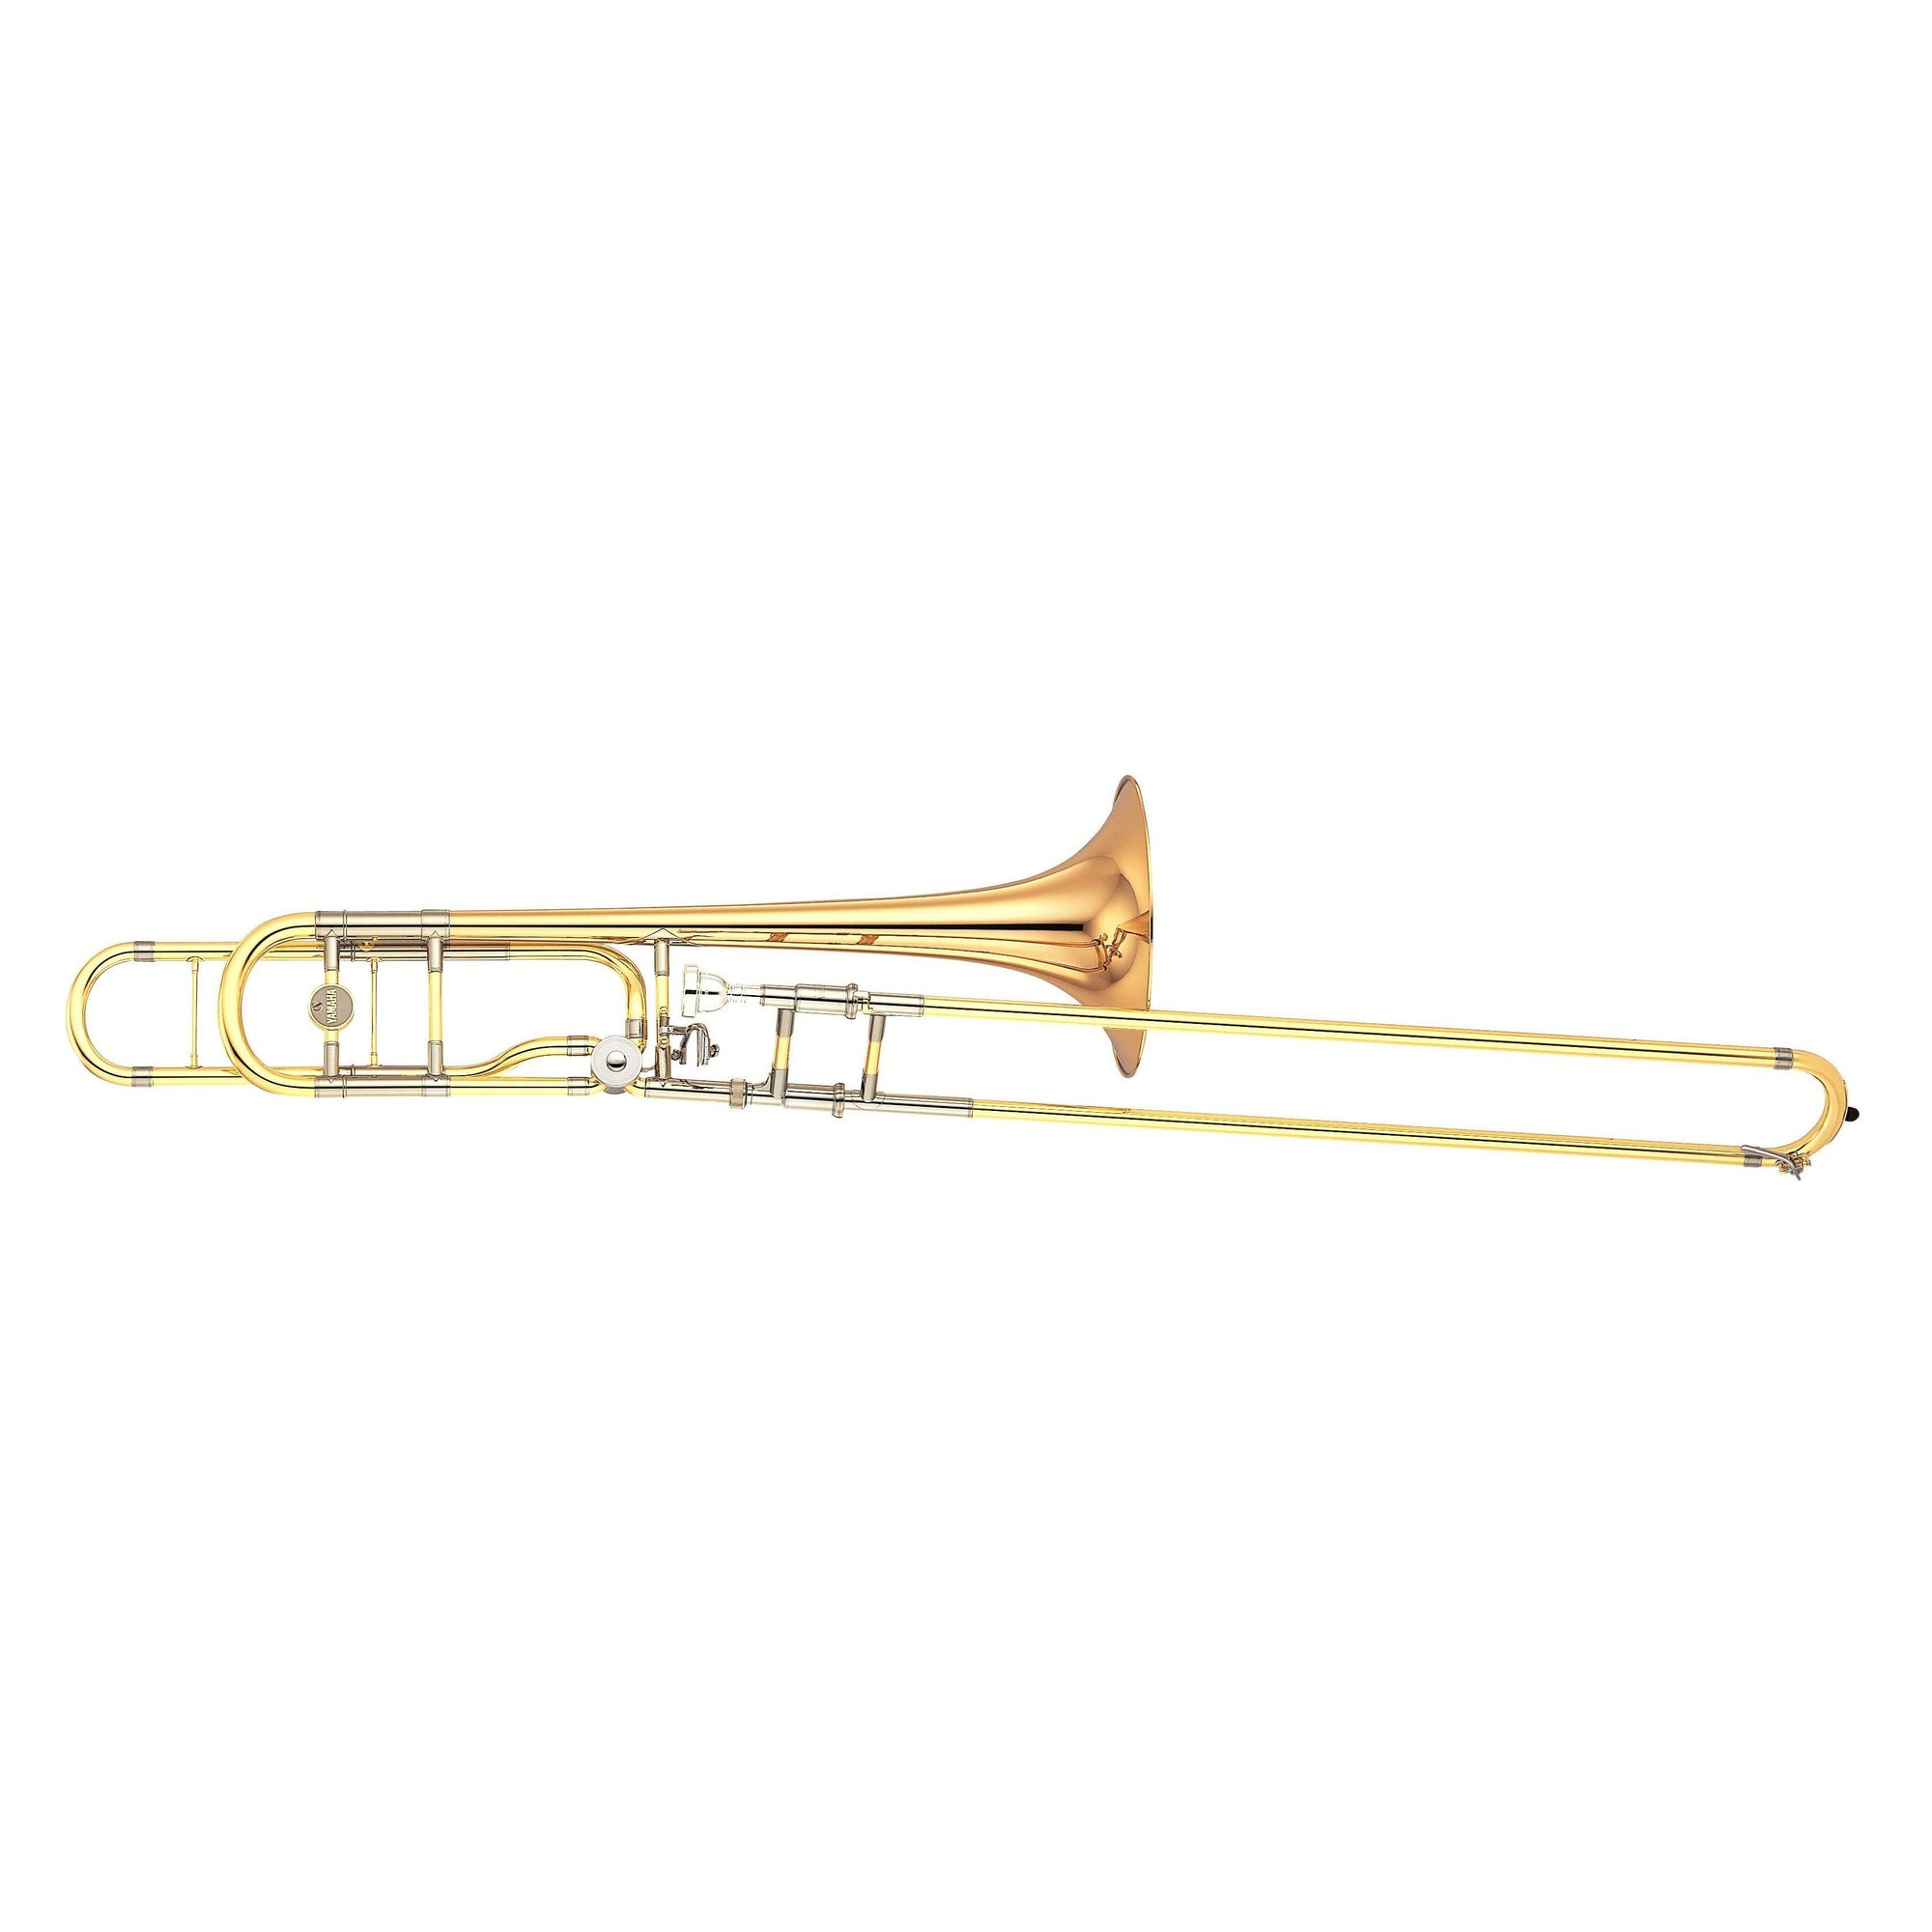 Yamaha - YSL-882GO - Custom Xeno Bb/F Tenor Trombone-Trombone-Yamaha-Music Elements